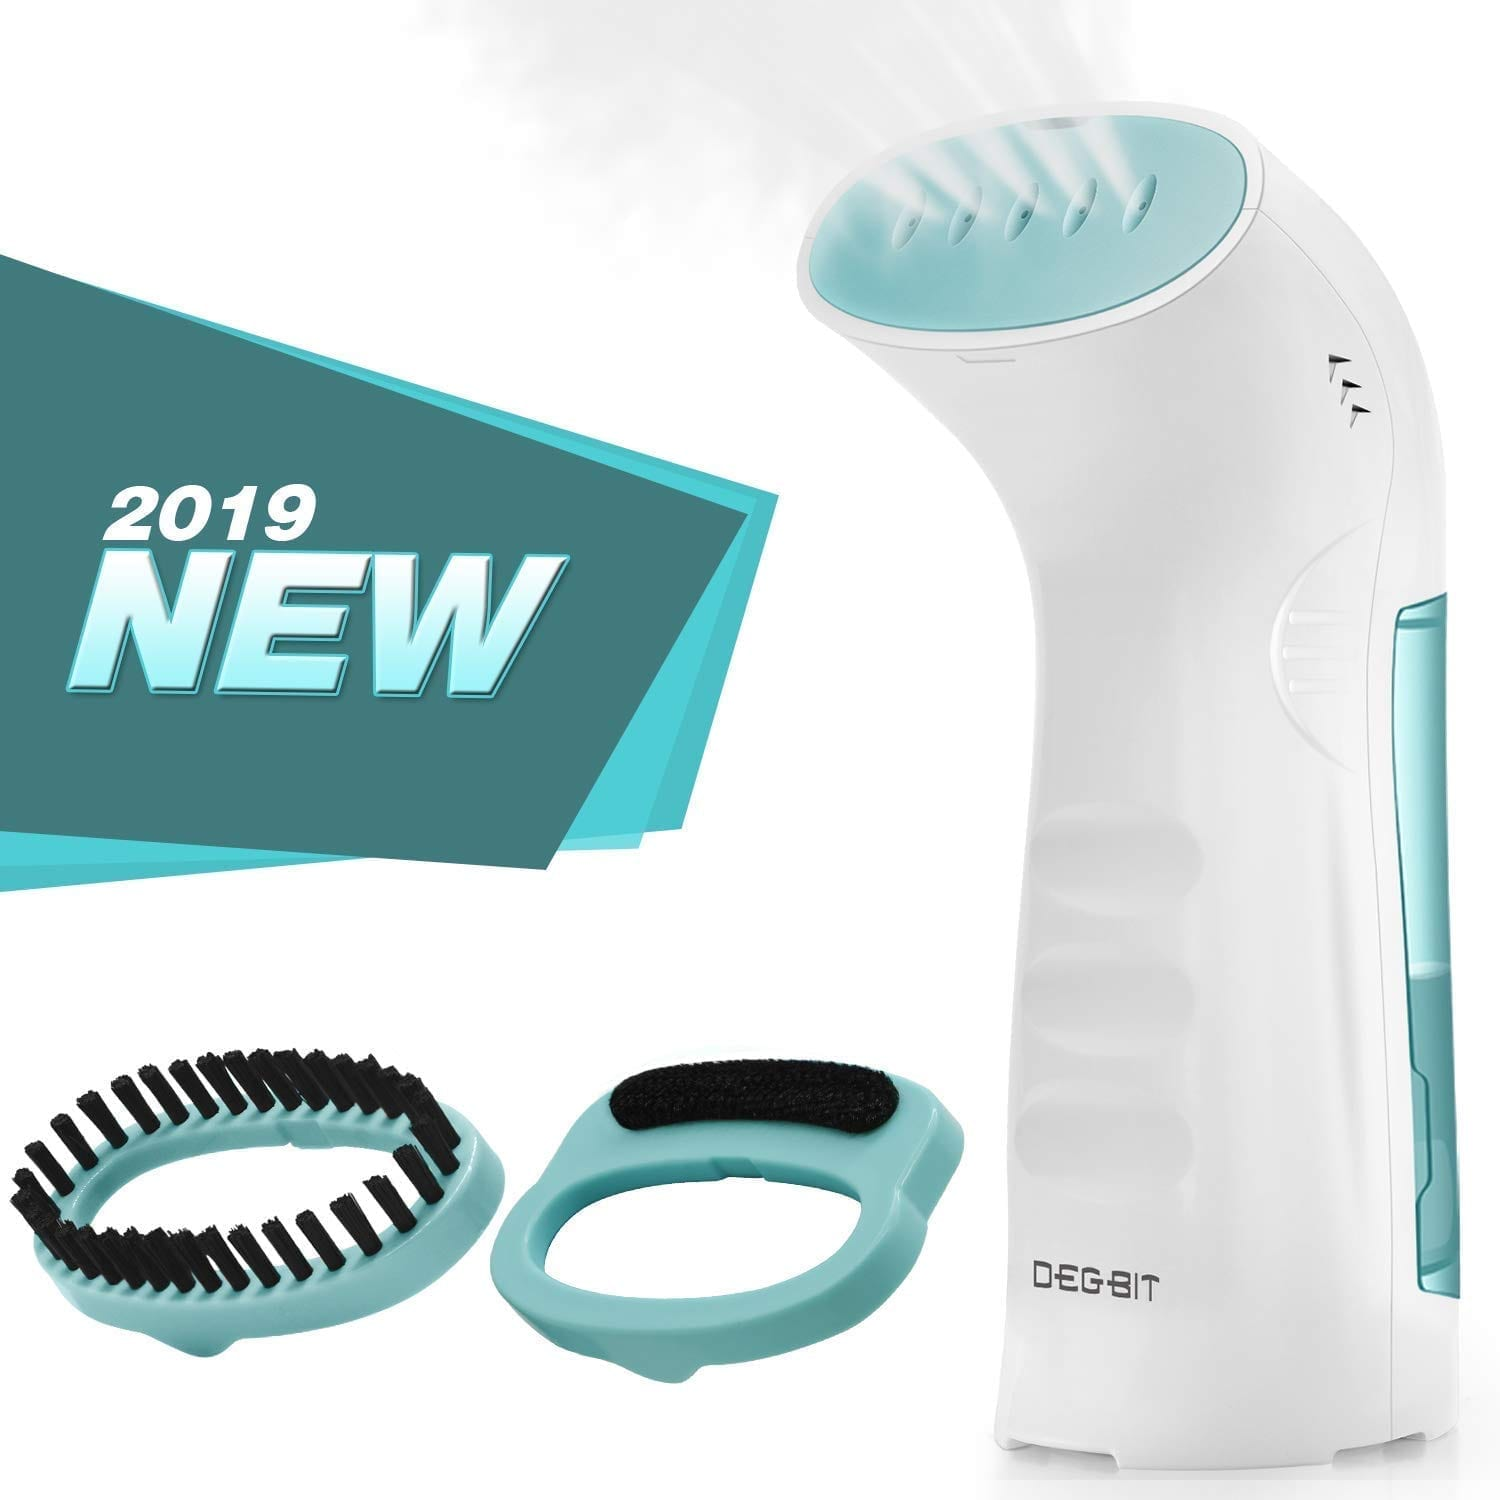 DB DEGBIT Portable Fast Heat-Up Steamer for Clothes